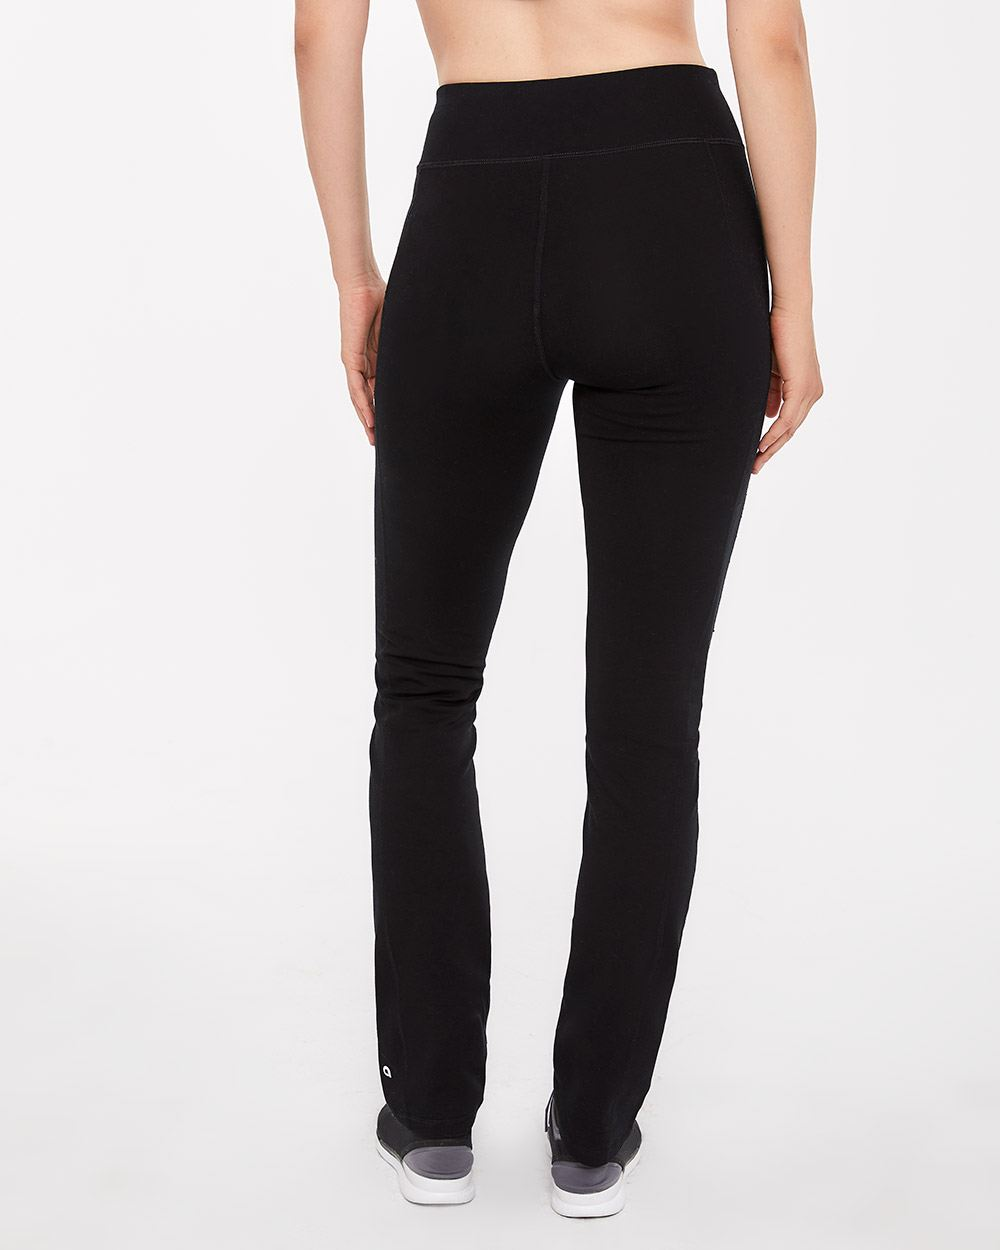 Hyba Tall Straight Leg Sculptor Pants